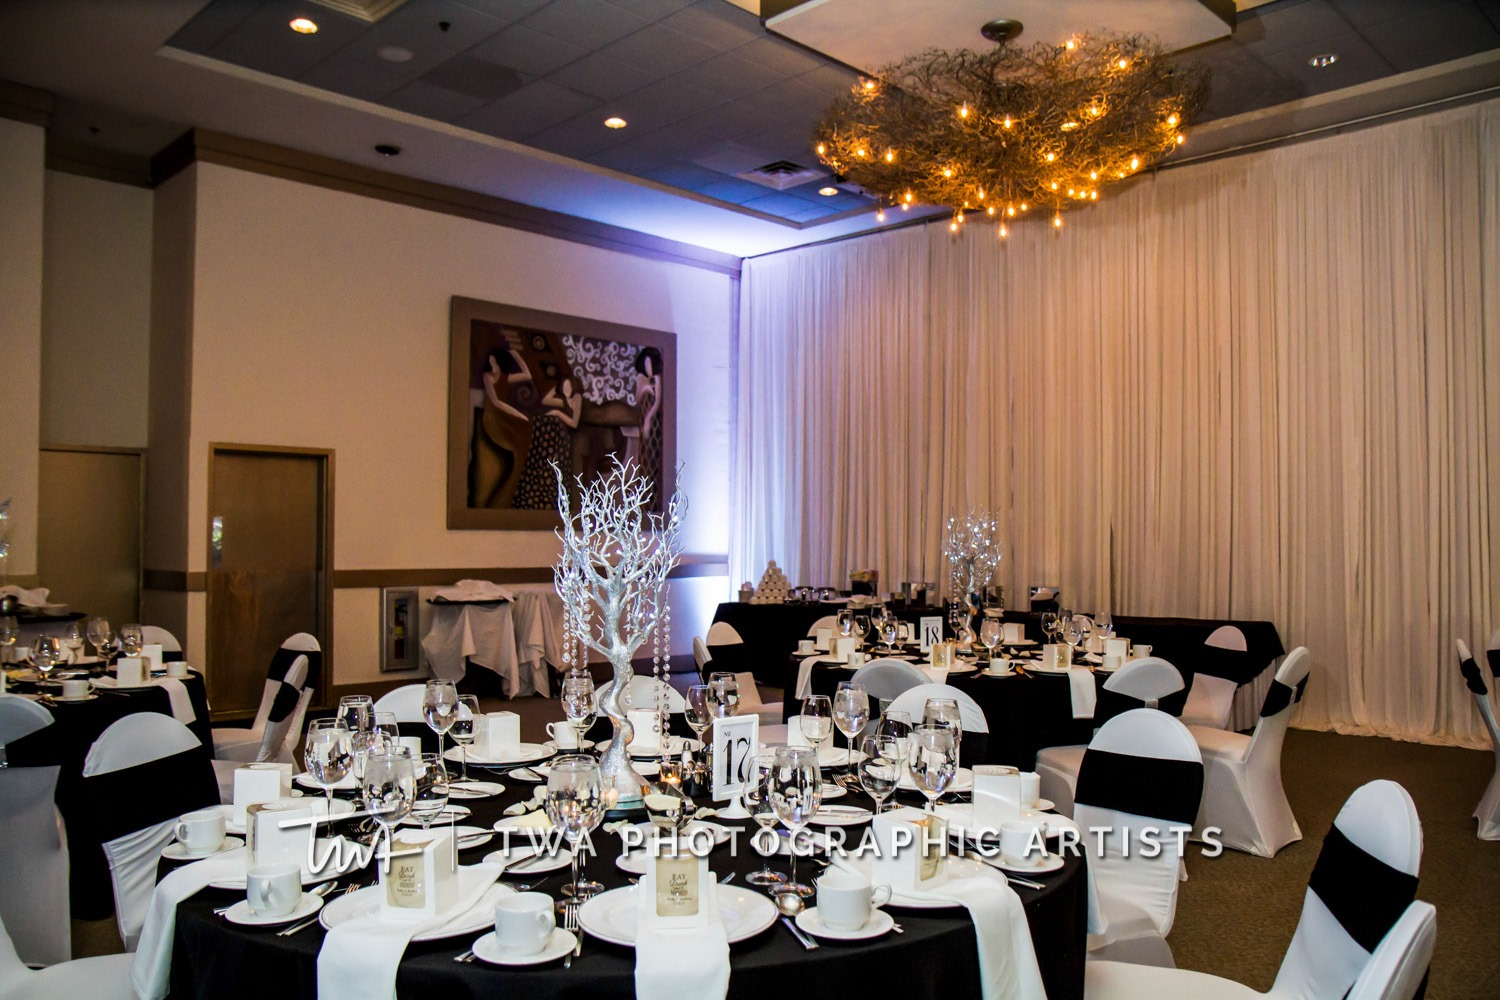 Chicago-Wedding-Photographer-TWA-Photographic-Artists-Belvedere-Banquets_Bentley_Garrido_MB_JA-0655